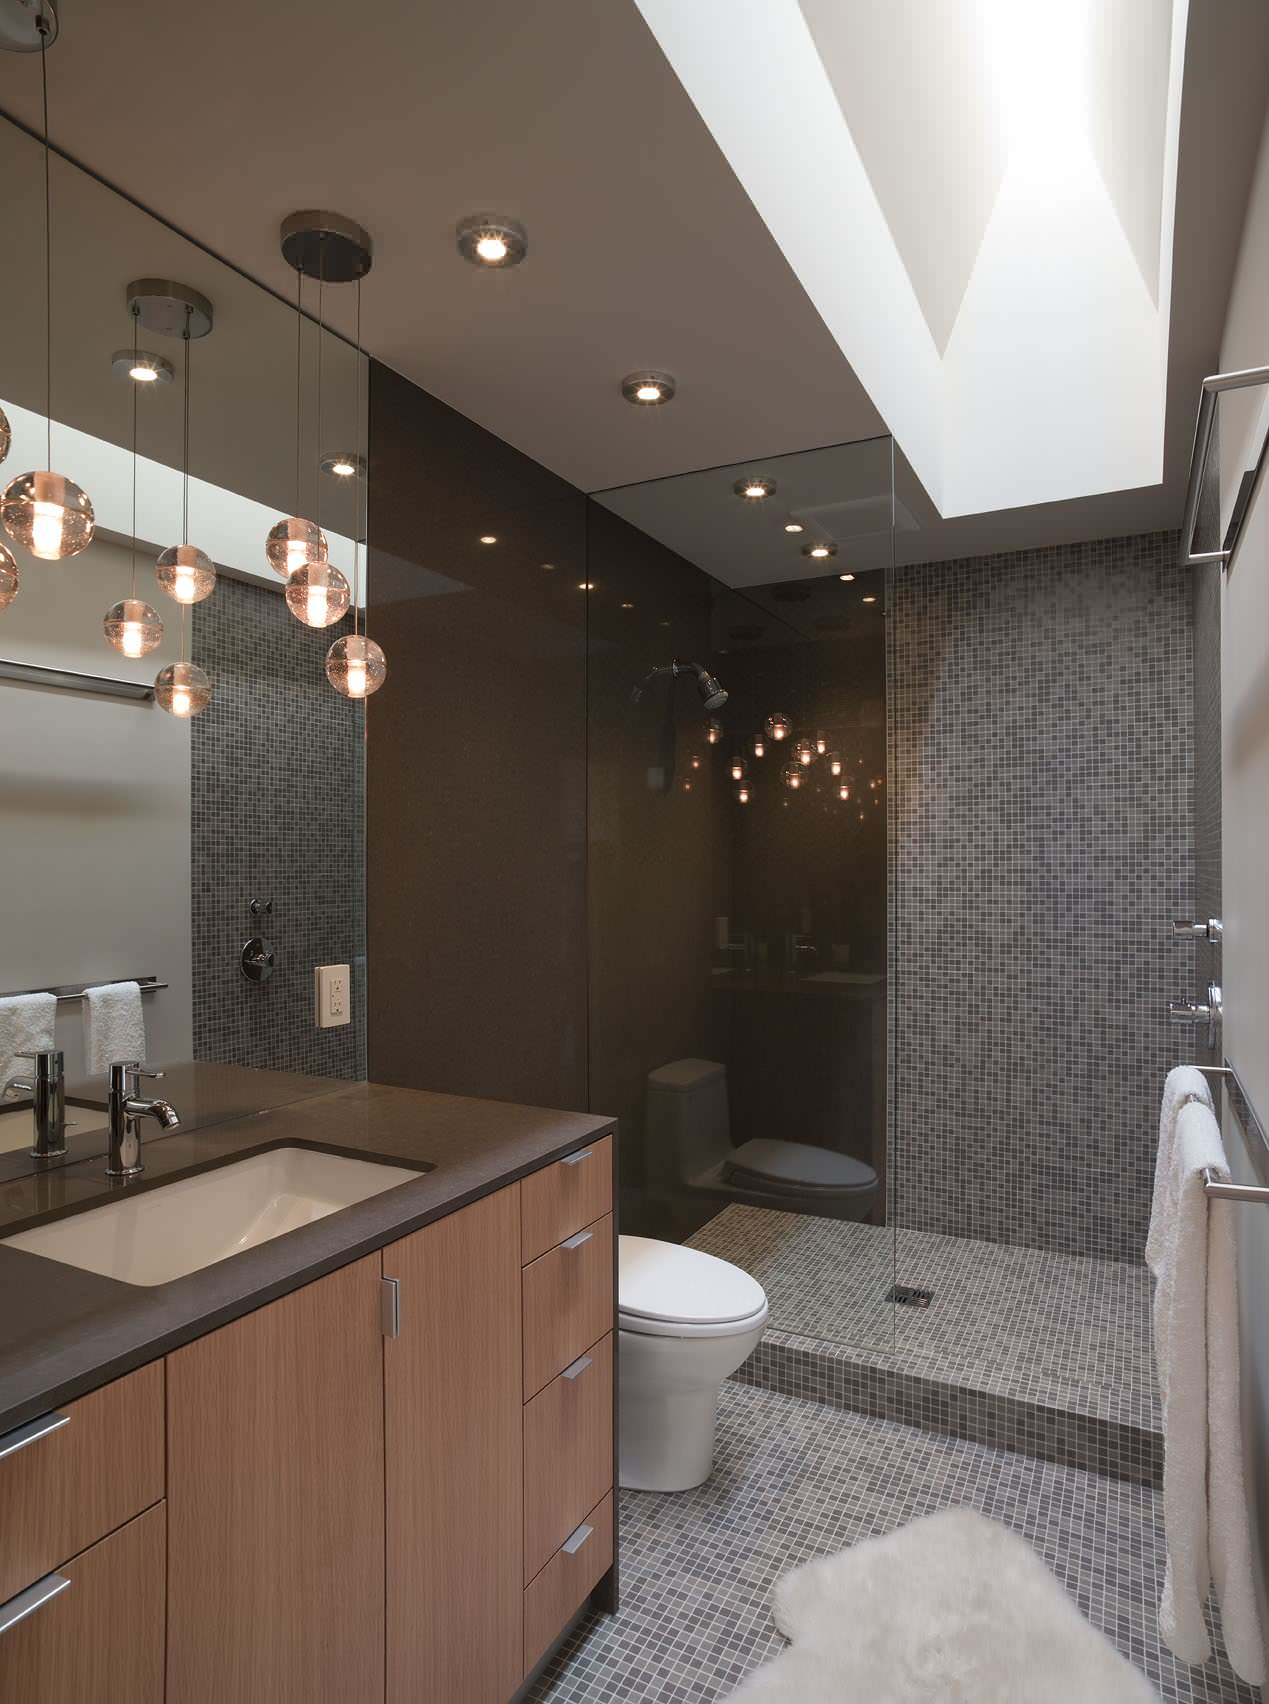 Remodel Bathroom Ideas Using Glass Shower Enclosures: Accent Wall And Glass Shower Enclosures Plus Sheepskin Rug In Minimalist Bathroom With Mosaic Tiles And Open Shower Plus Skylights Also Bathroom Lighting Ideas With Wood Cabinets Plus Undermount Sink